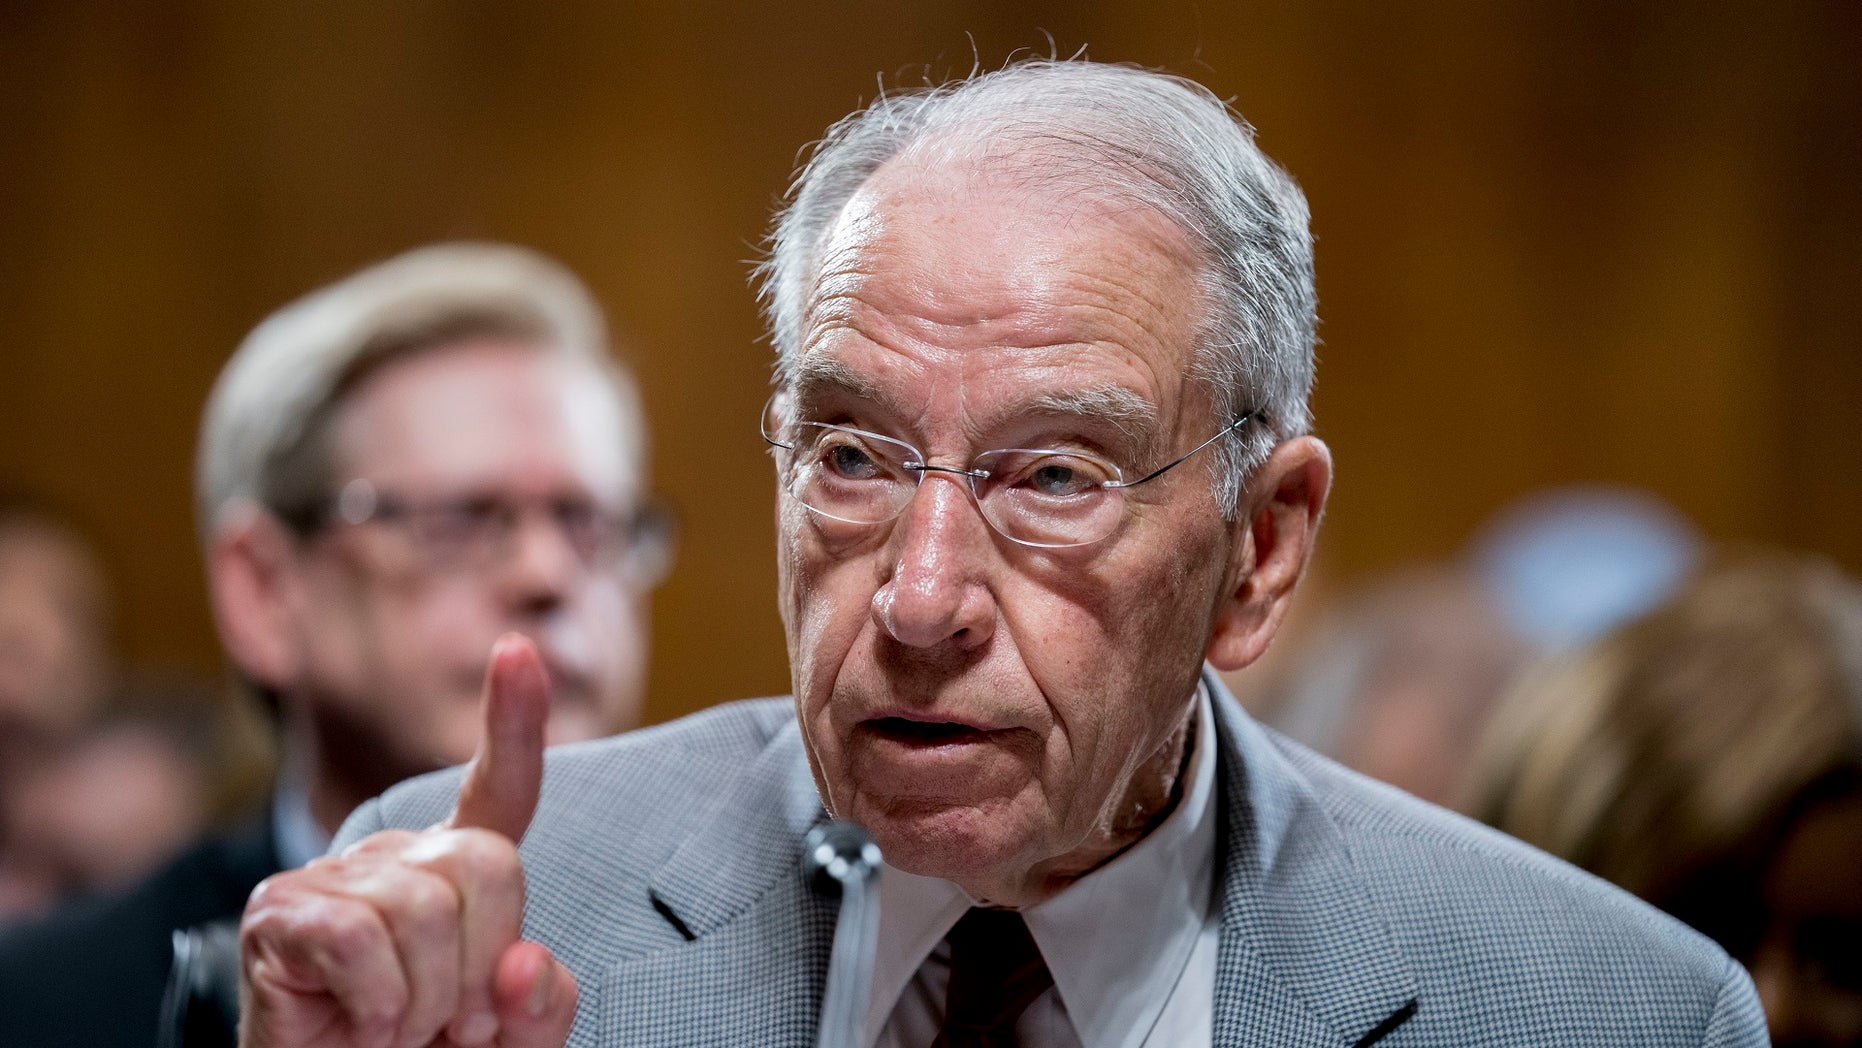 Grassley On Heels Of Kavanaugh Confirmation Pushes Dozens Watch And Latest News In Senate Judiciary Committee Chuck Is The Chairman